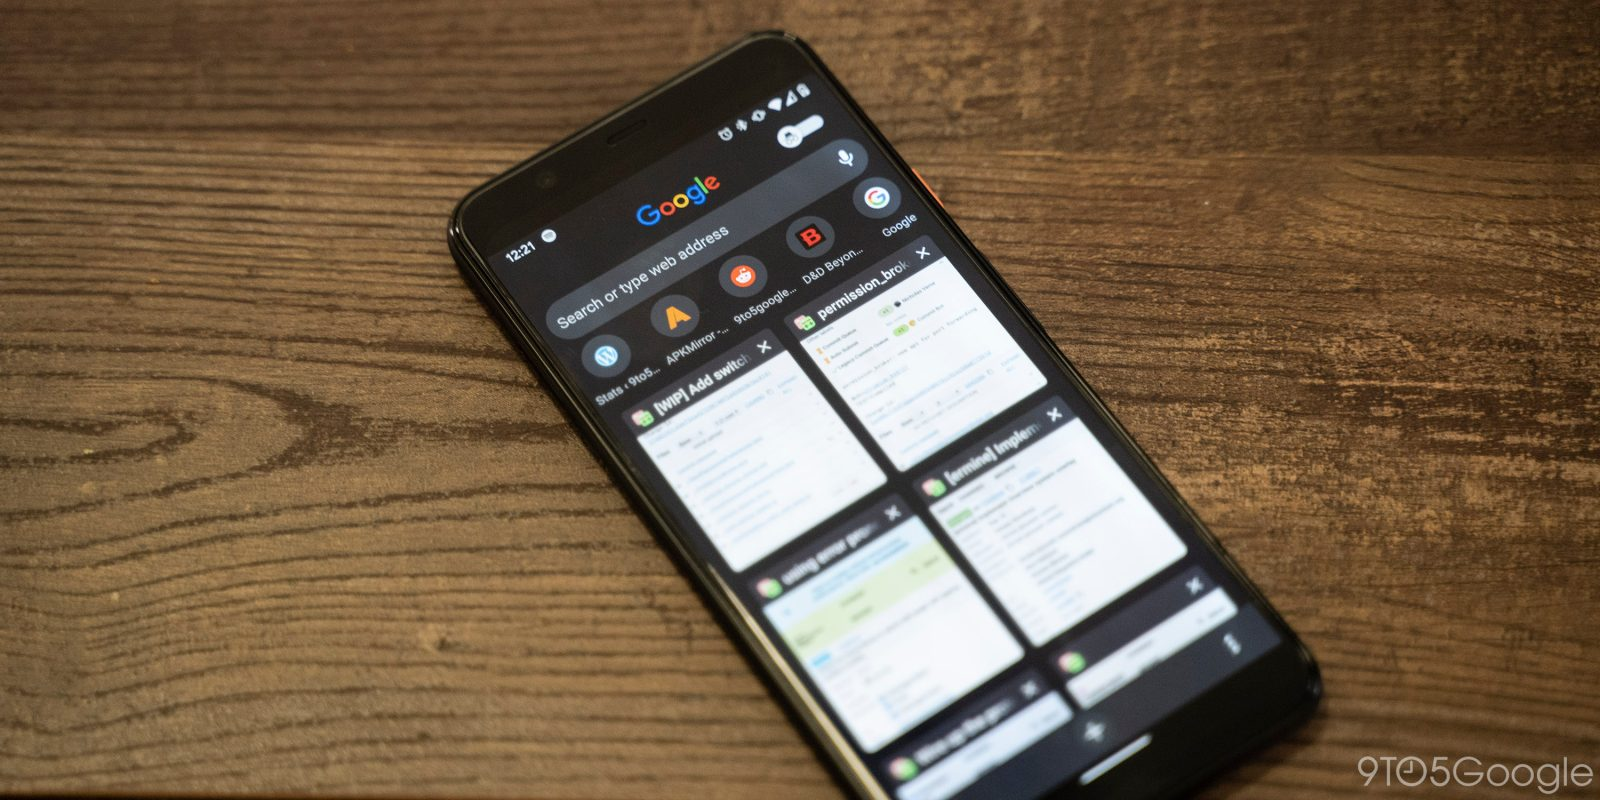 Chrome for Android tests recommending tabs you should close, even if you won't listen